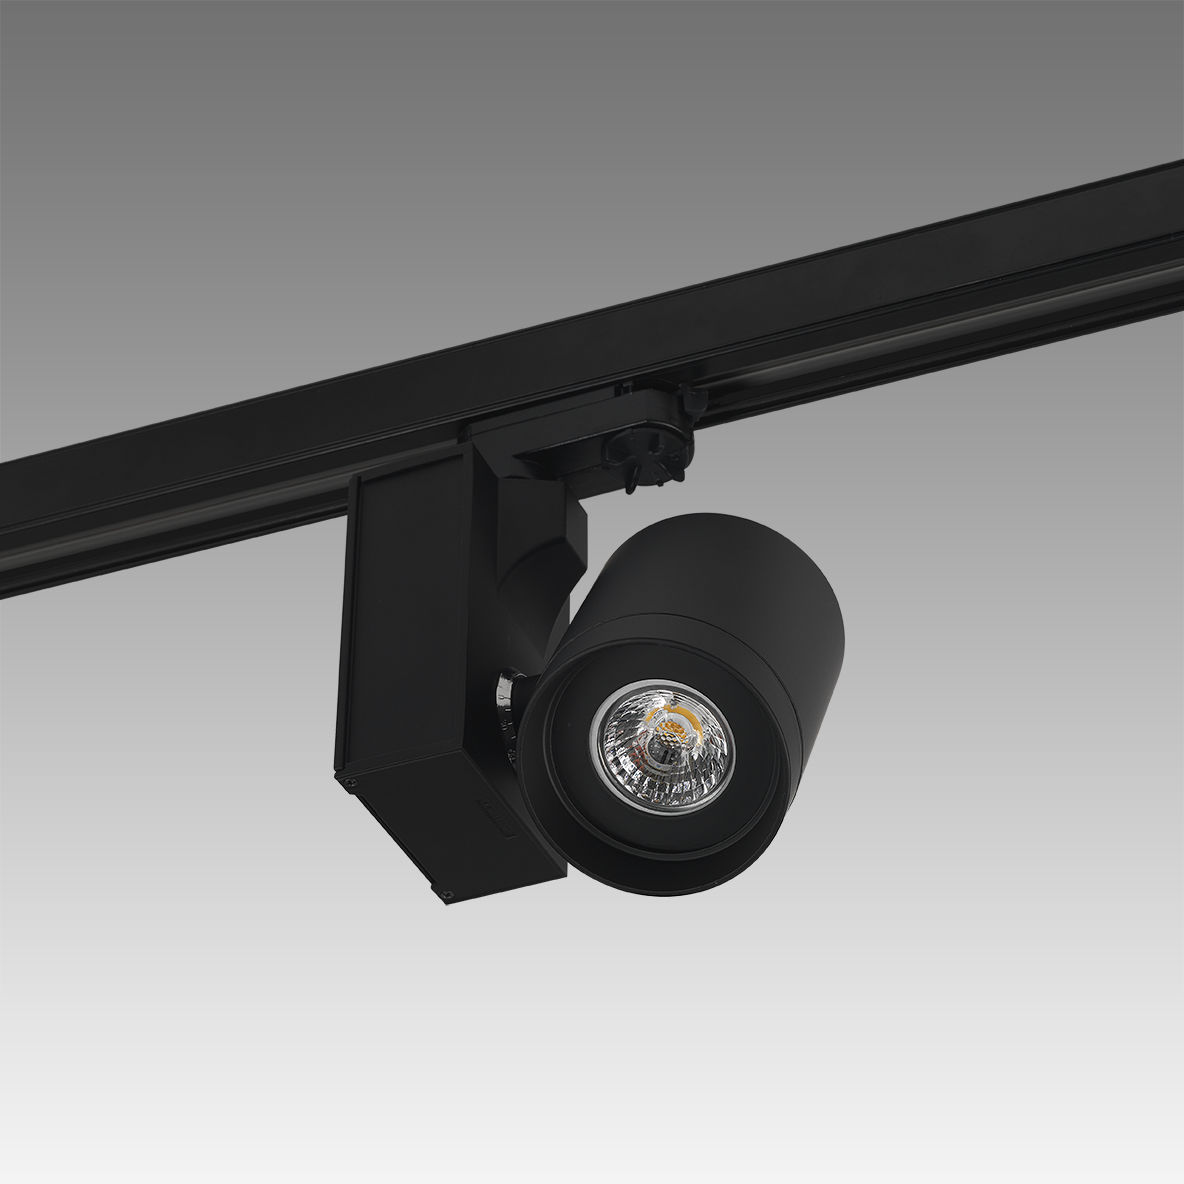 Led track light round metal commercial small concept orbit nv led track light round metal commercial small concept aloadofball Image collections